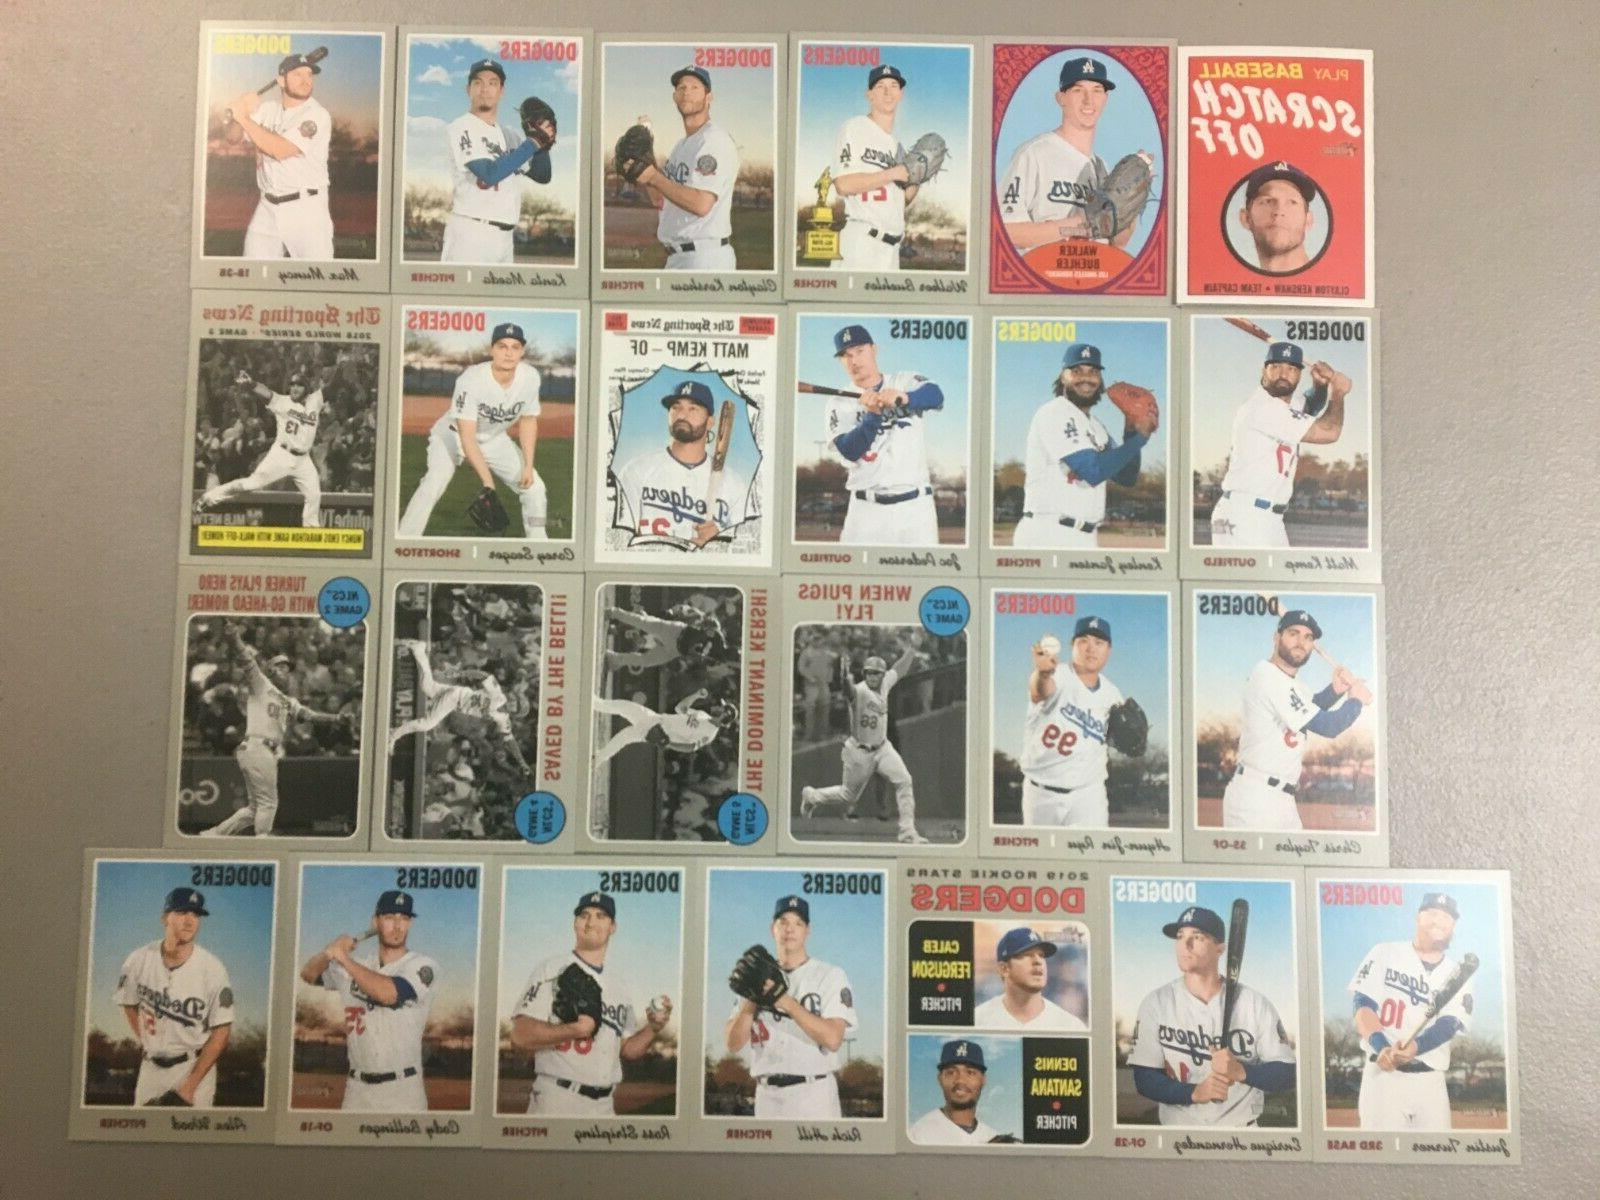 2019 topps heritage los angeles dodgers master